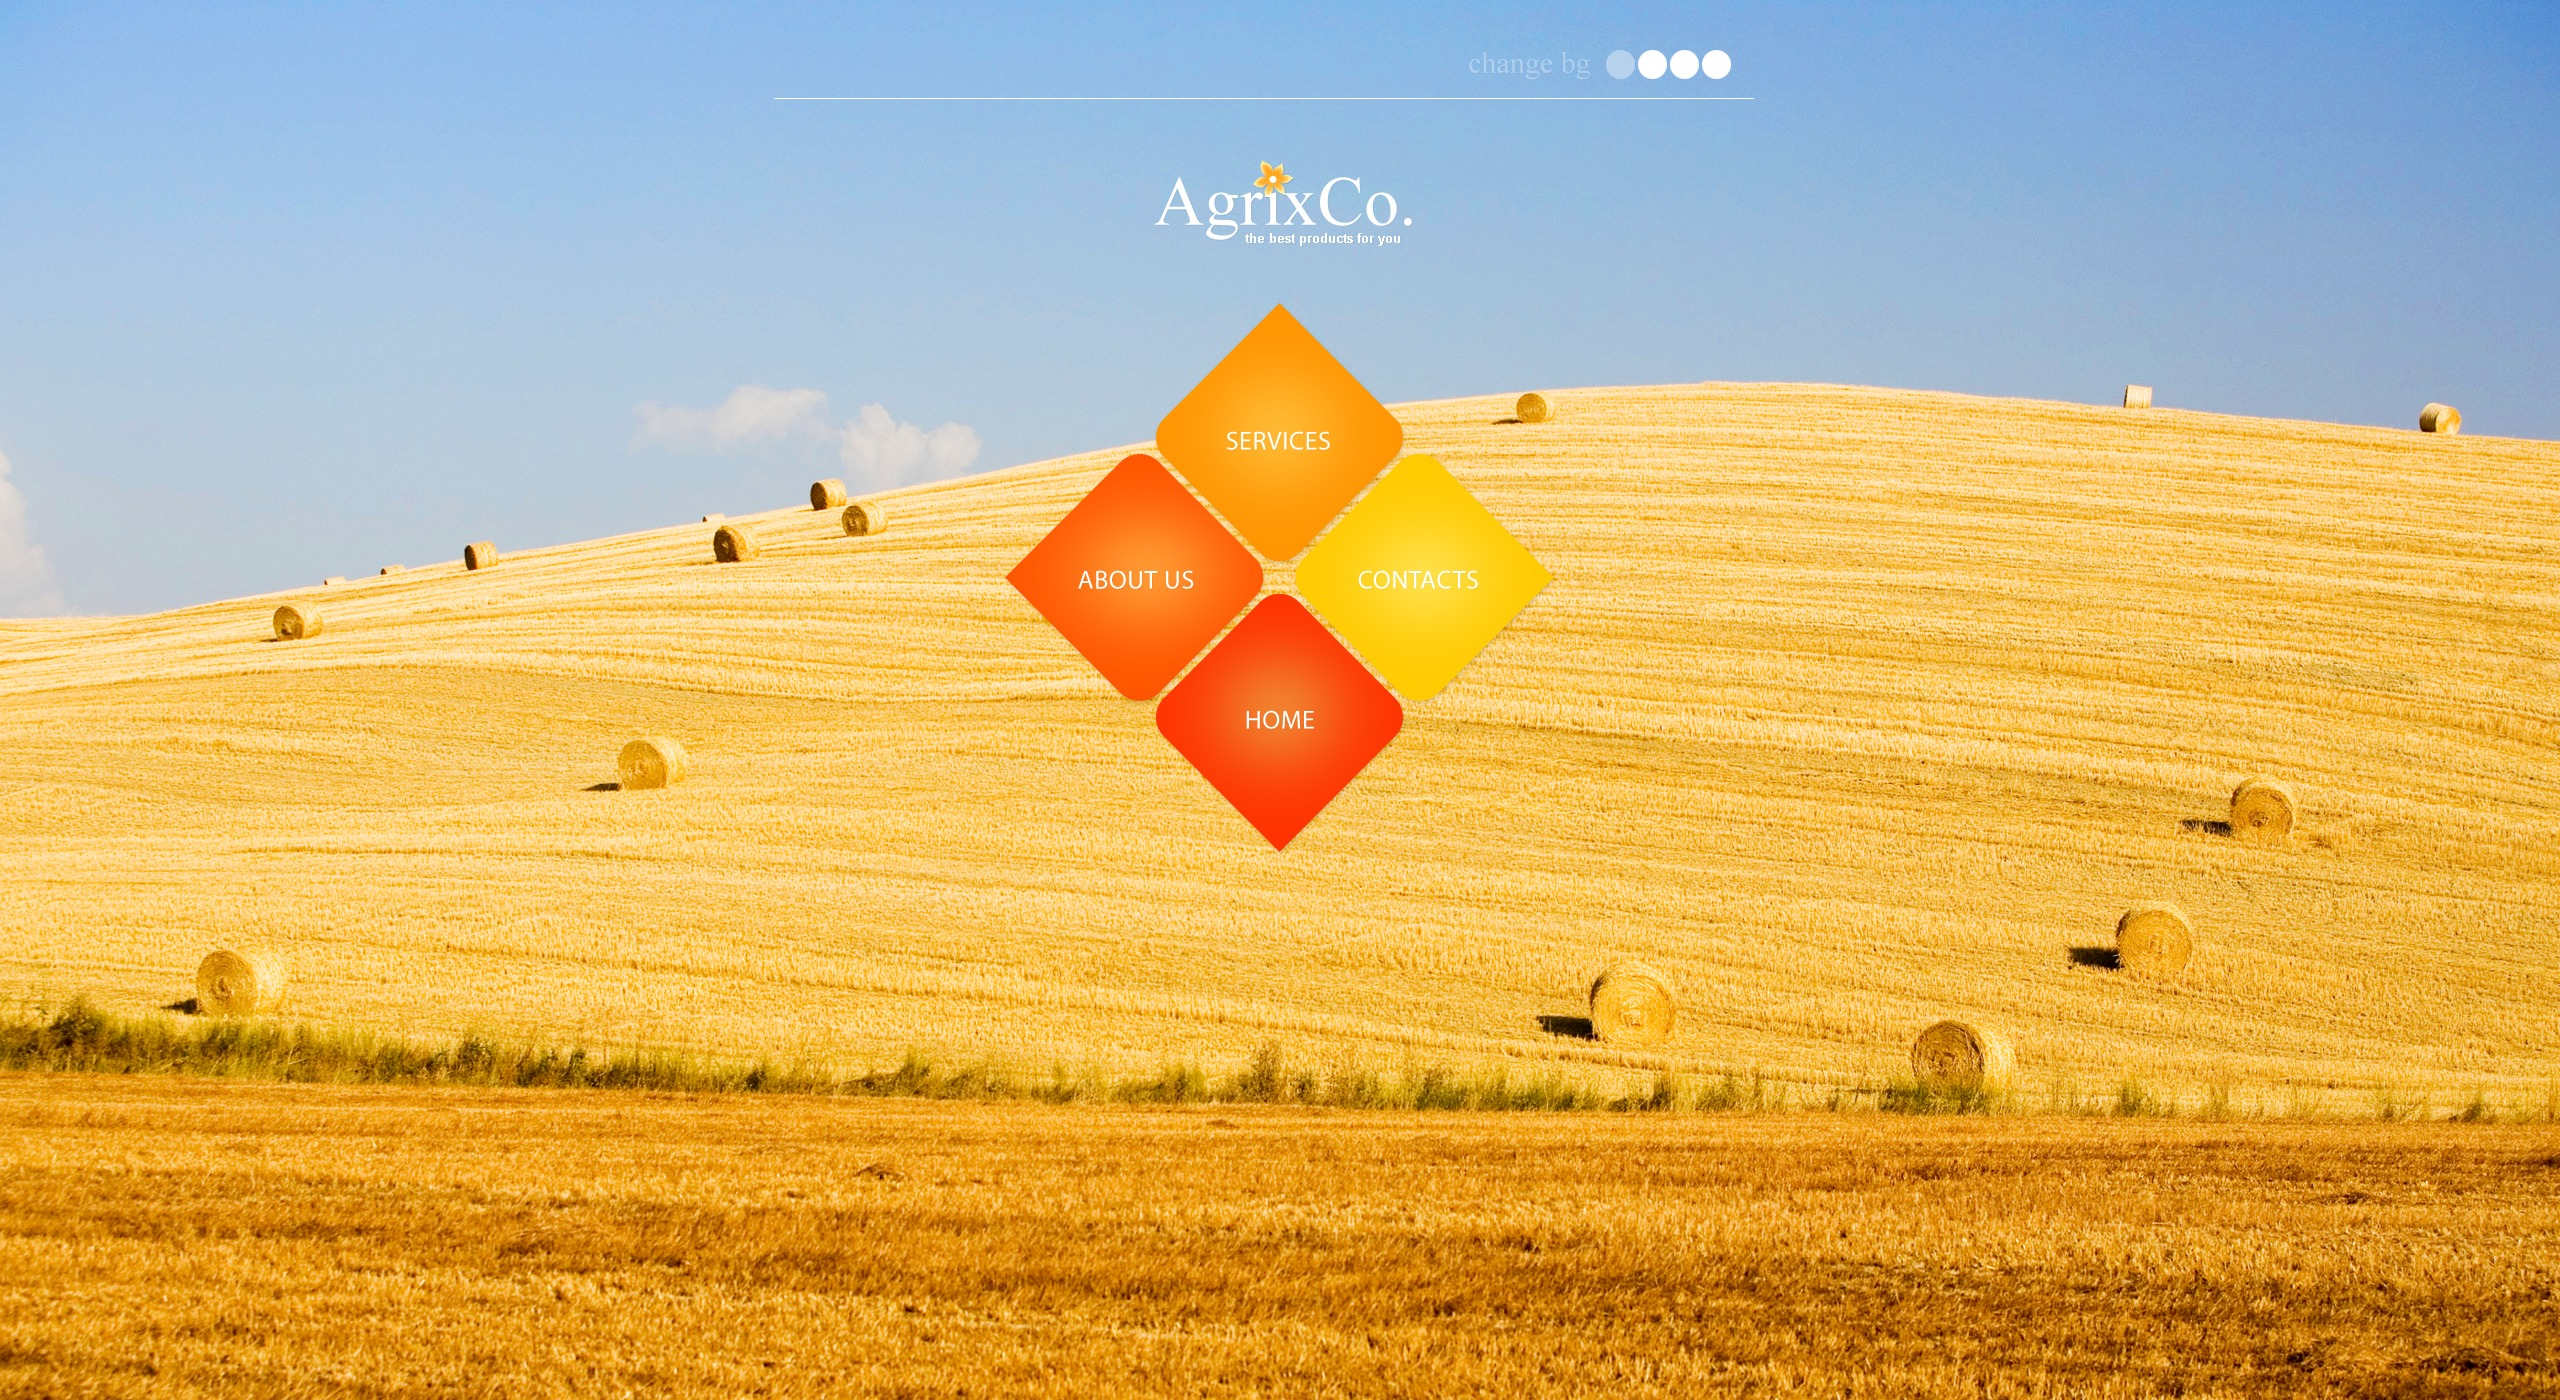 The Agrix Company PSD Design 54485, one of the best PSD templates of its kind (agriculture, wide, jquery), also known as agrix company PSD template, agriculture company PSD template, business PSD template, grain-crops PSD template, cereals PSD template, field PSD template, combine PSD template, harvest PSD template, farming PSD template, plants PSD template, services PSD template, products solutions PSD template, market PSD template, delivery PSD template, resource PSD template, grassland PSD template, equipment PSD template, nitrates PSD template, fertilizer PSD template, clients PSD template, partners PSD template, innovations PSD template, support PSD template, information dealer PSD template, stocks PSD template, team and related with agrix company, agriculture company, business, grain-crops, cereals, field, combine, harvest, farming, plants, services, products solutions, market, delivery, resource, grassland, equipment, nitrates, fertilizer, clients, partners, innovations, support, information dealer, stocks, team, etc.